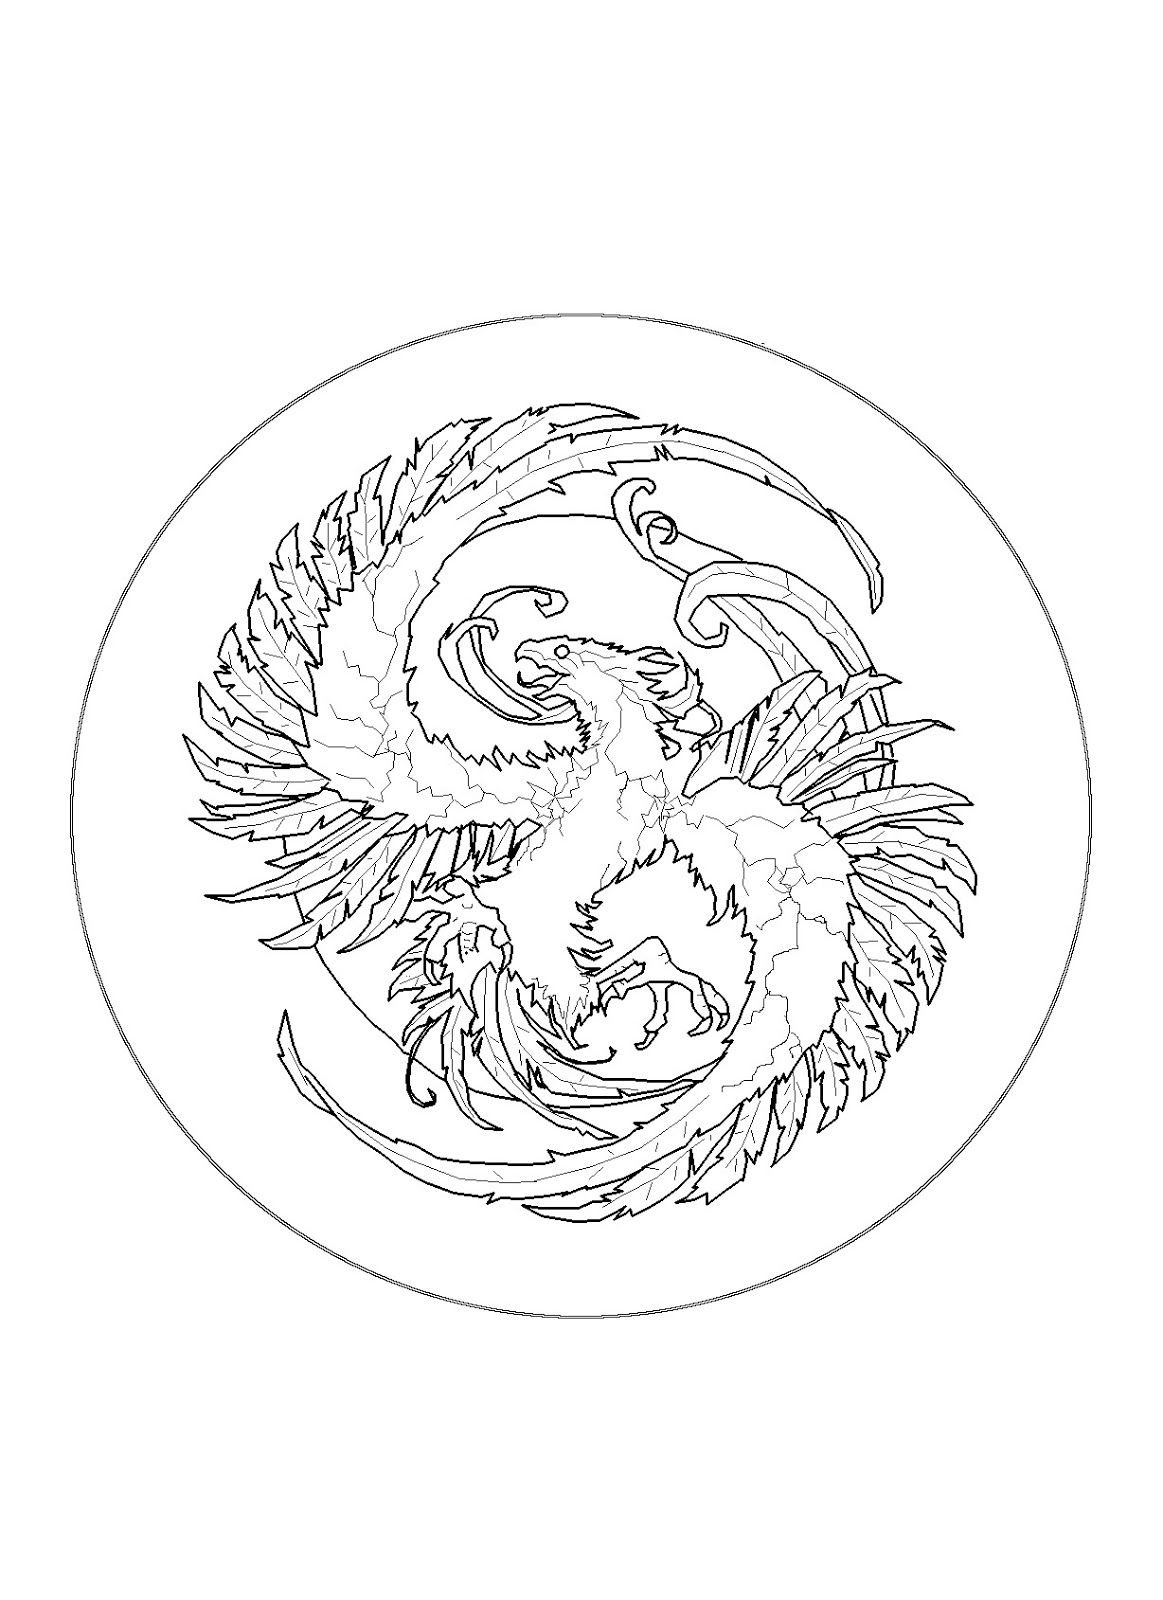 Fiery Phoenix Portrait Coloring Pages Free Printable Coloring Pages Coloring Books